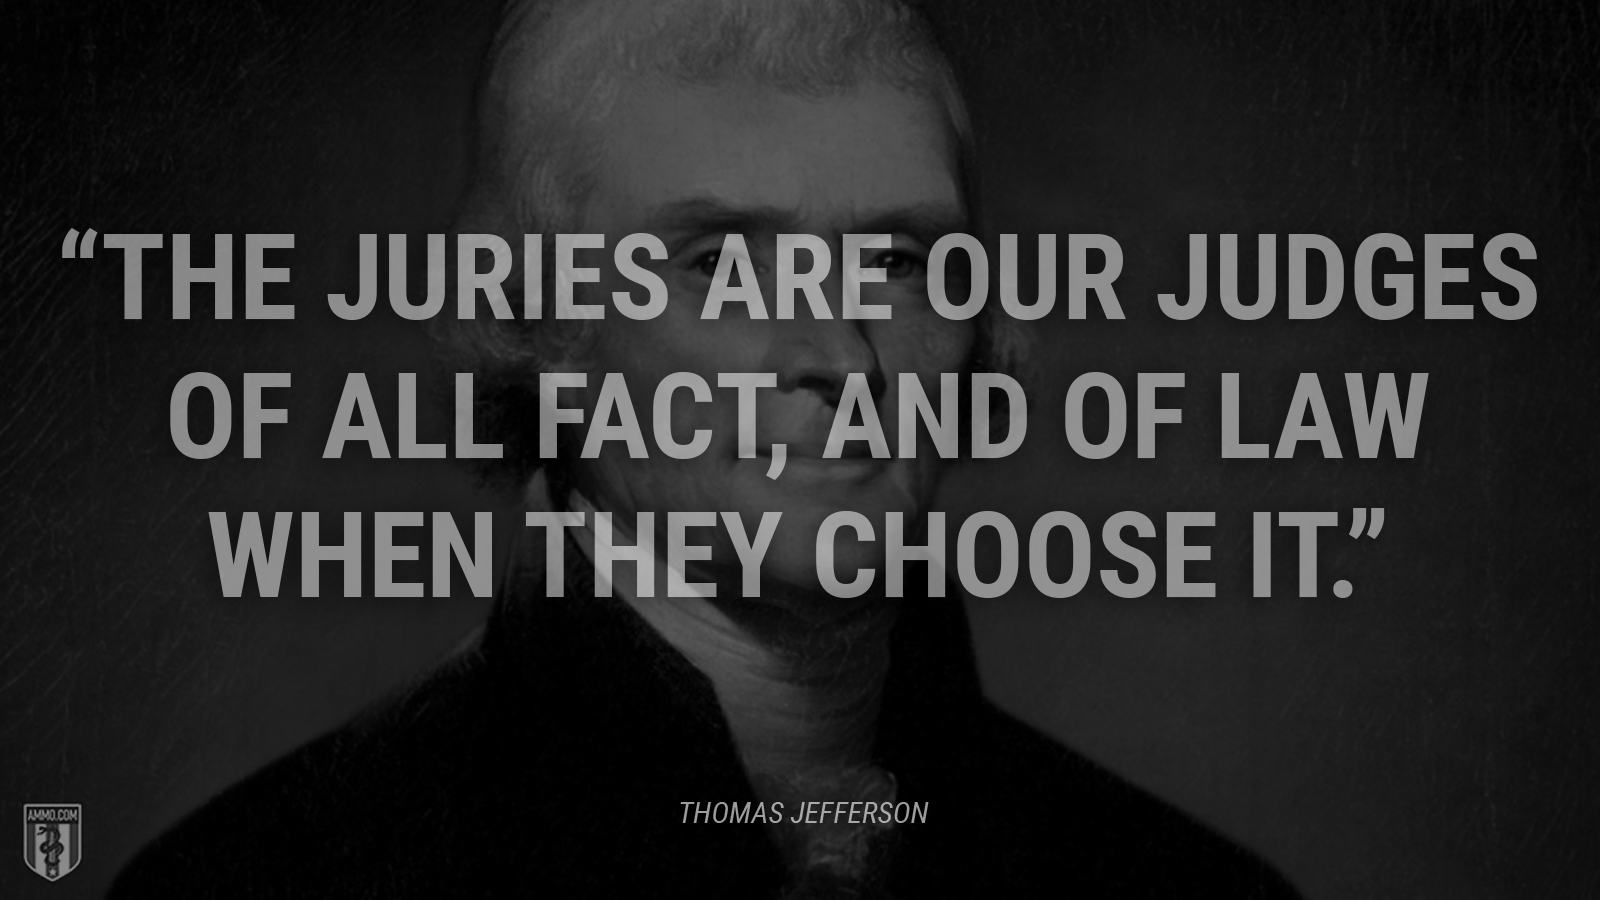 """The juries are our judges of all fact, and of law when they choose it."" - Thomas Jefferson"